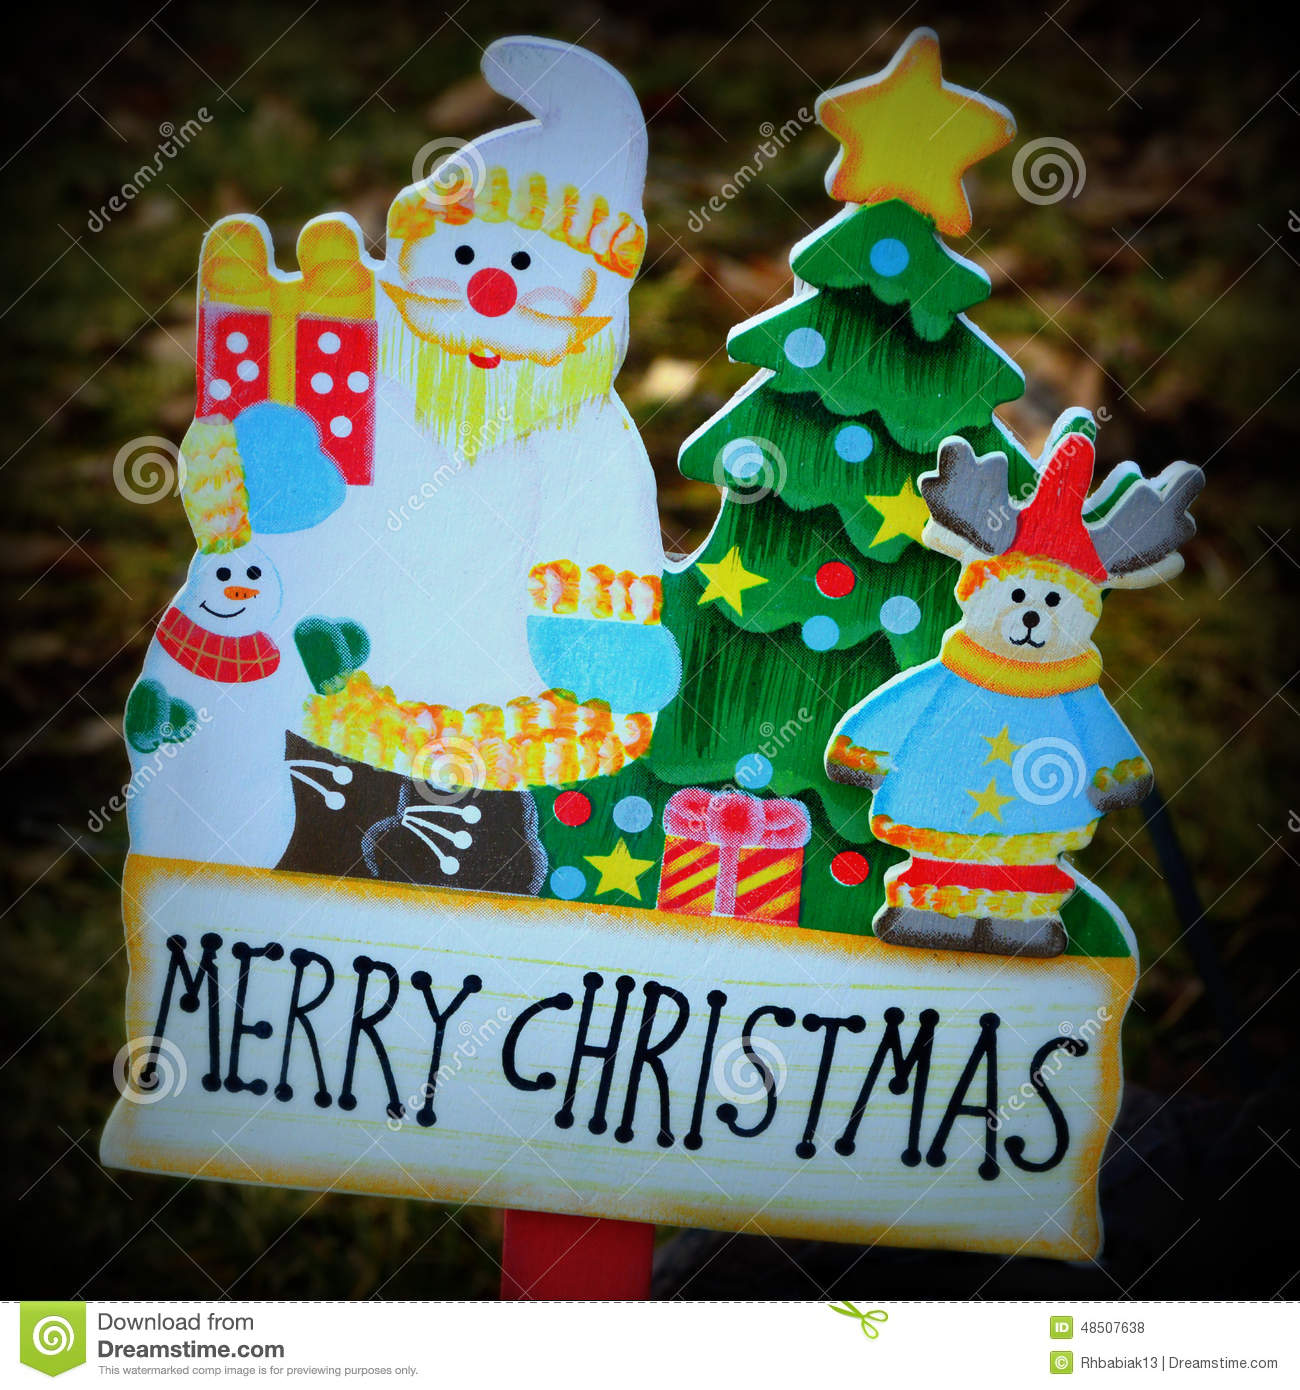 a hand painted wooden yard decoration with santa presents snowman teddy bear christmas tree with a star and words that say merry christmas - Painted Wood Christmas Yard Decorations